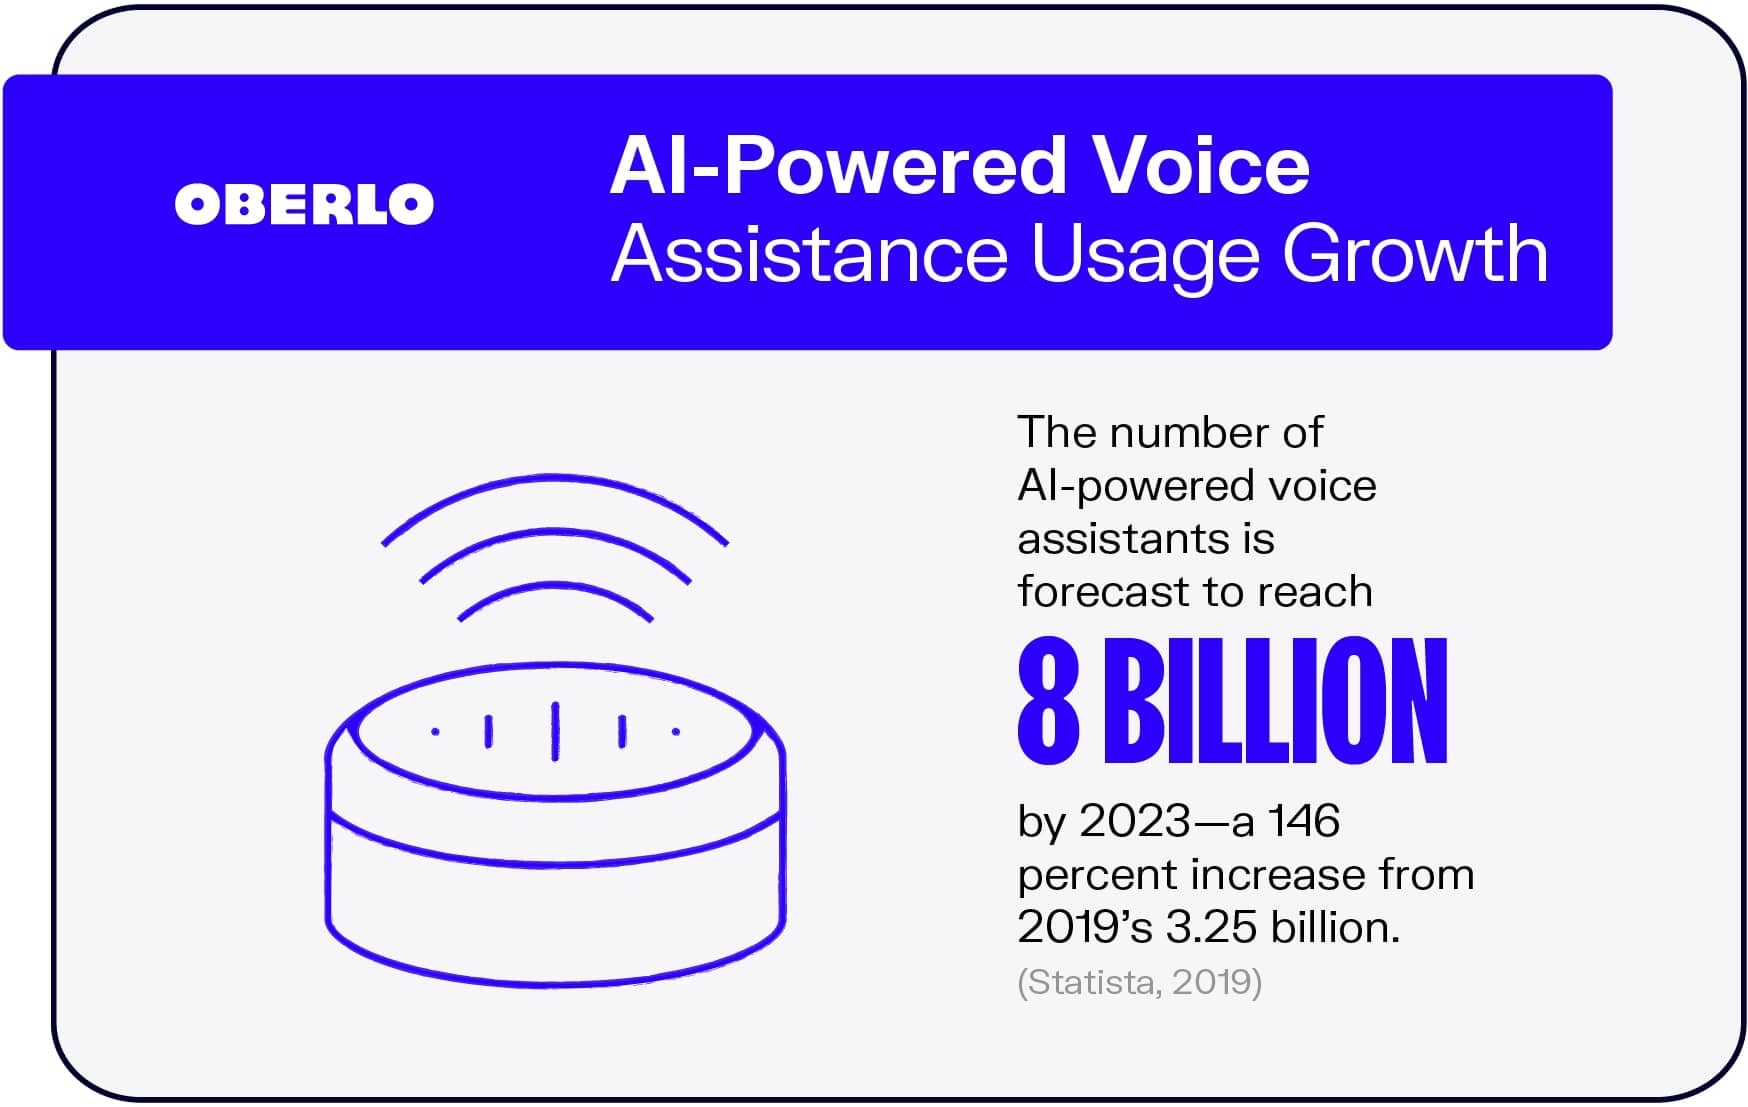 AI-Powered Voice Assistance Usage Growth